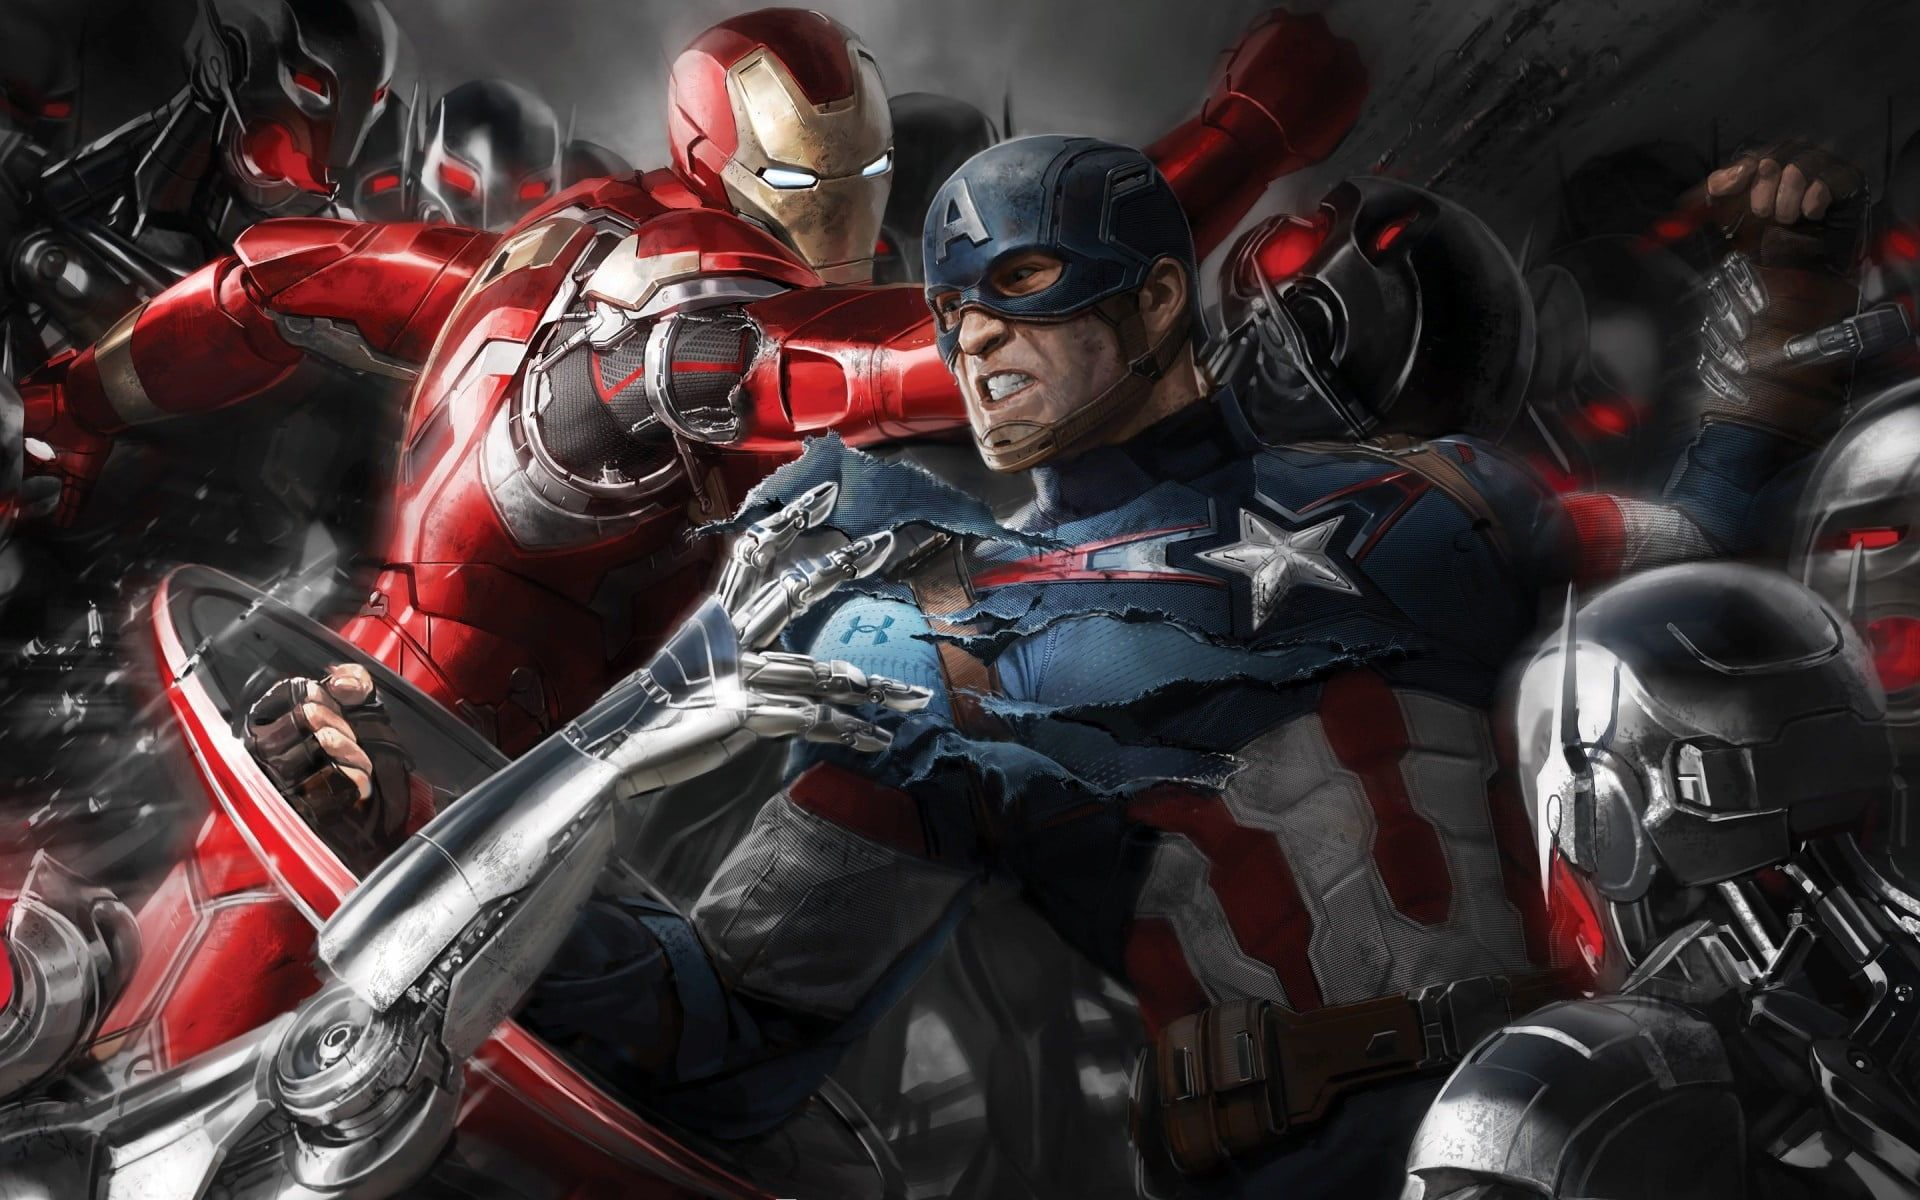 Captain American And Iron Man Illustration Iron Man Captain America The Avengers Avengers Age Of Ultron Marvel Co In 2021 Avengers Marvel Avengers Funny Age Of Ultron